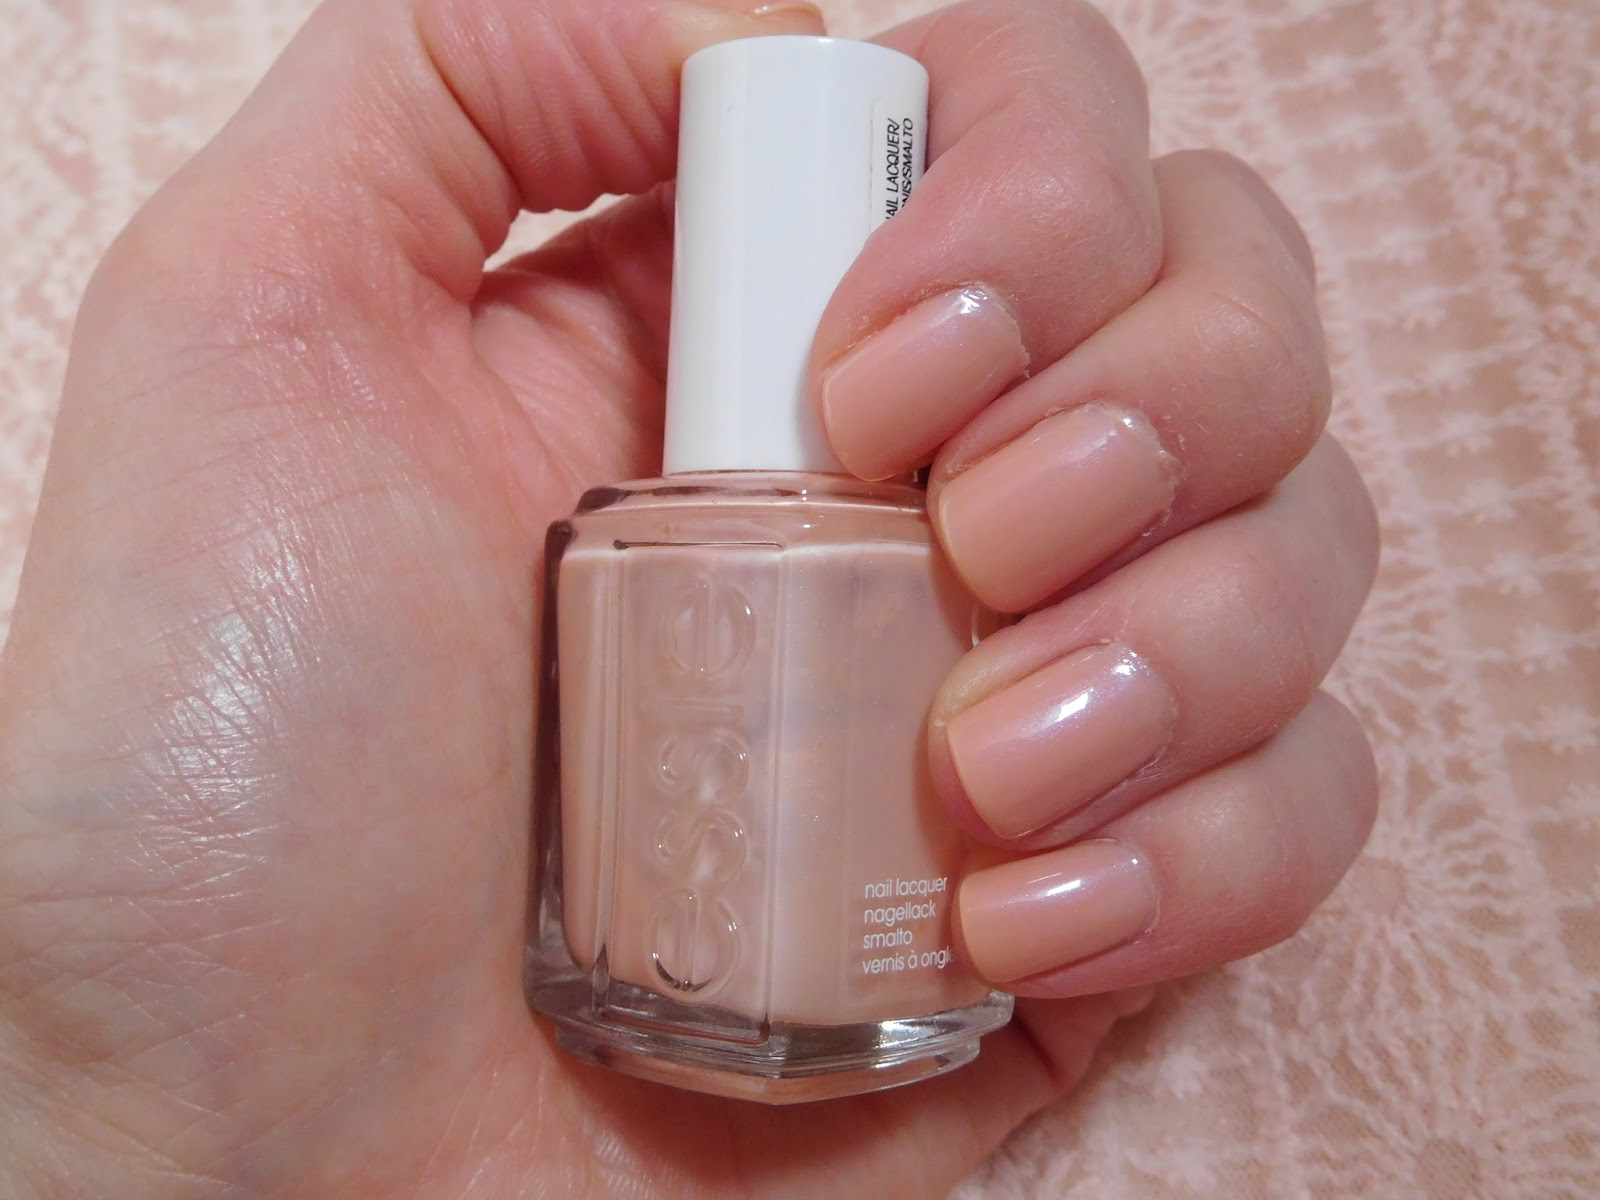 This Polish Came Out In The Bridal 2015 Collection And Is A Sheer It Peach Colour Which Has Lovely Shimmer Running Through